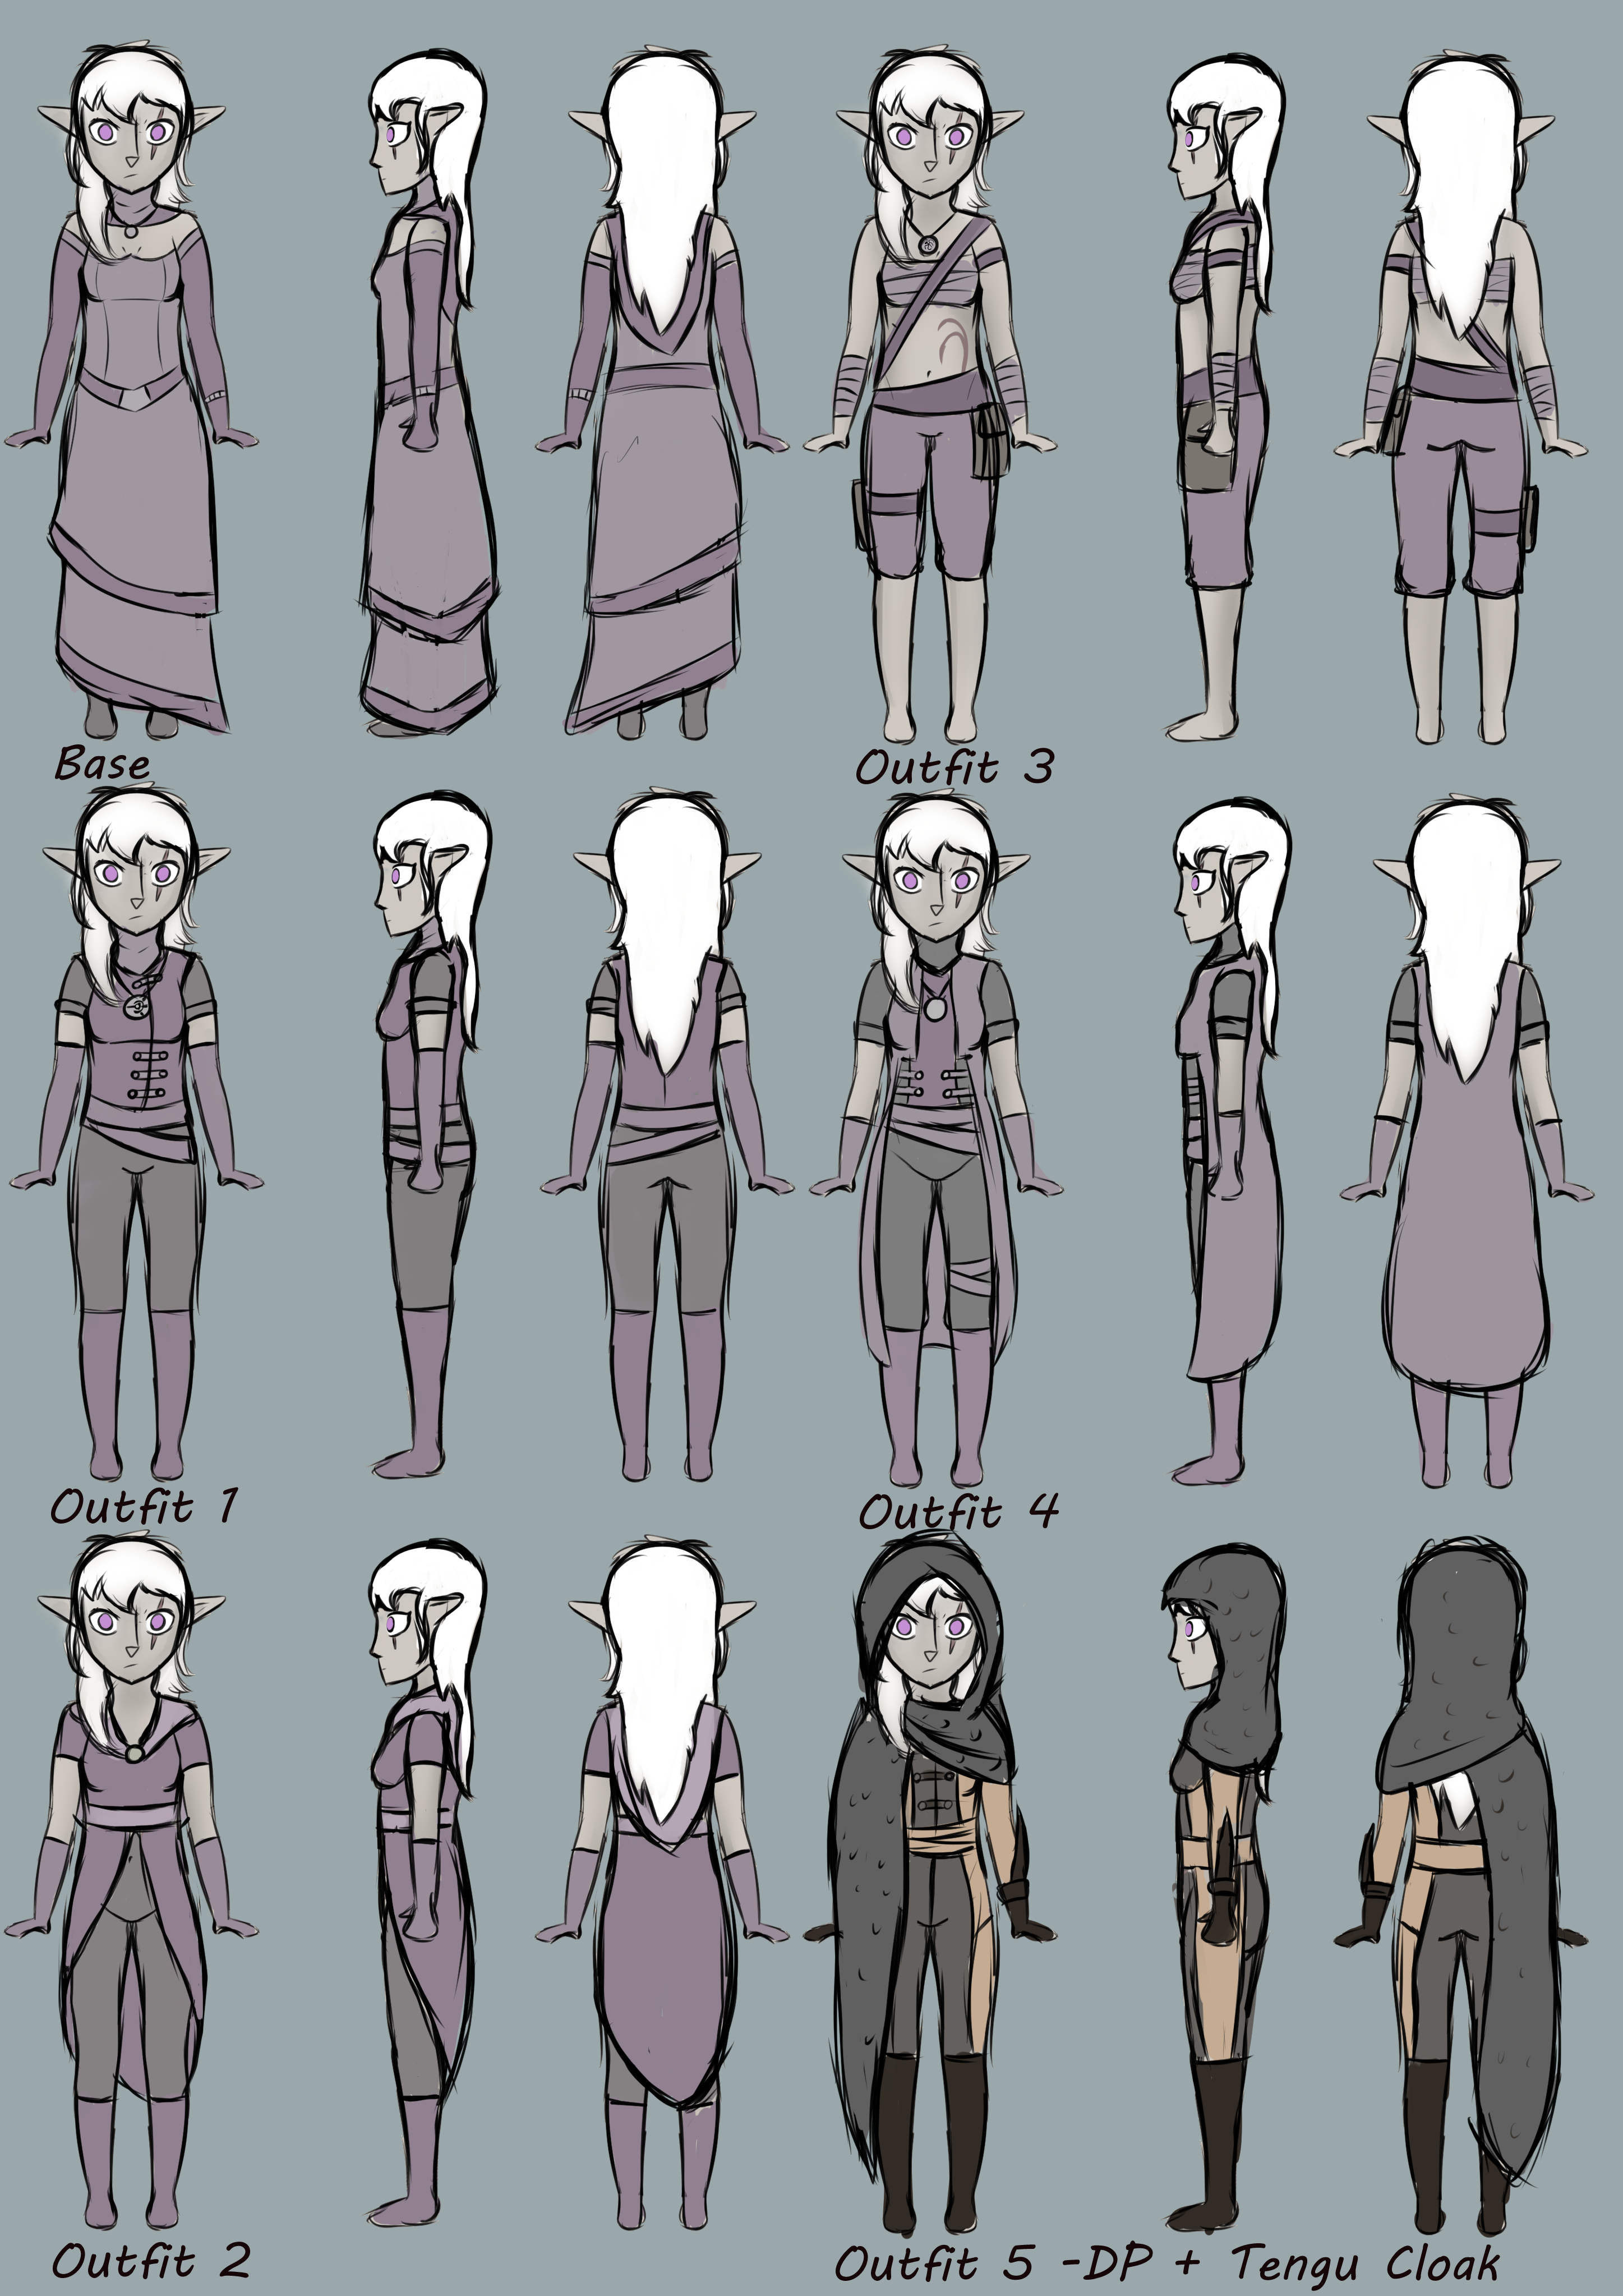 A little collection of different outfits of my half-elf npc